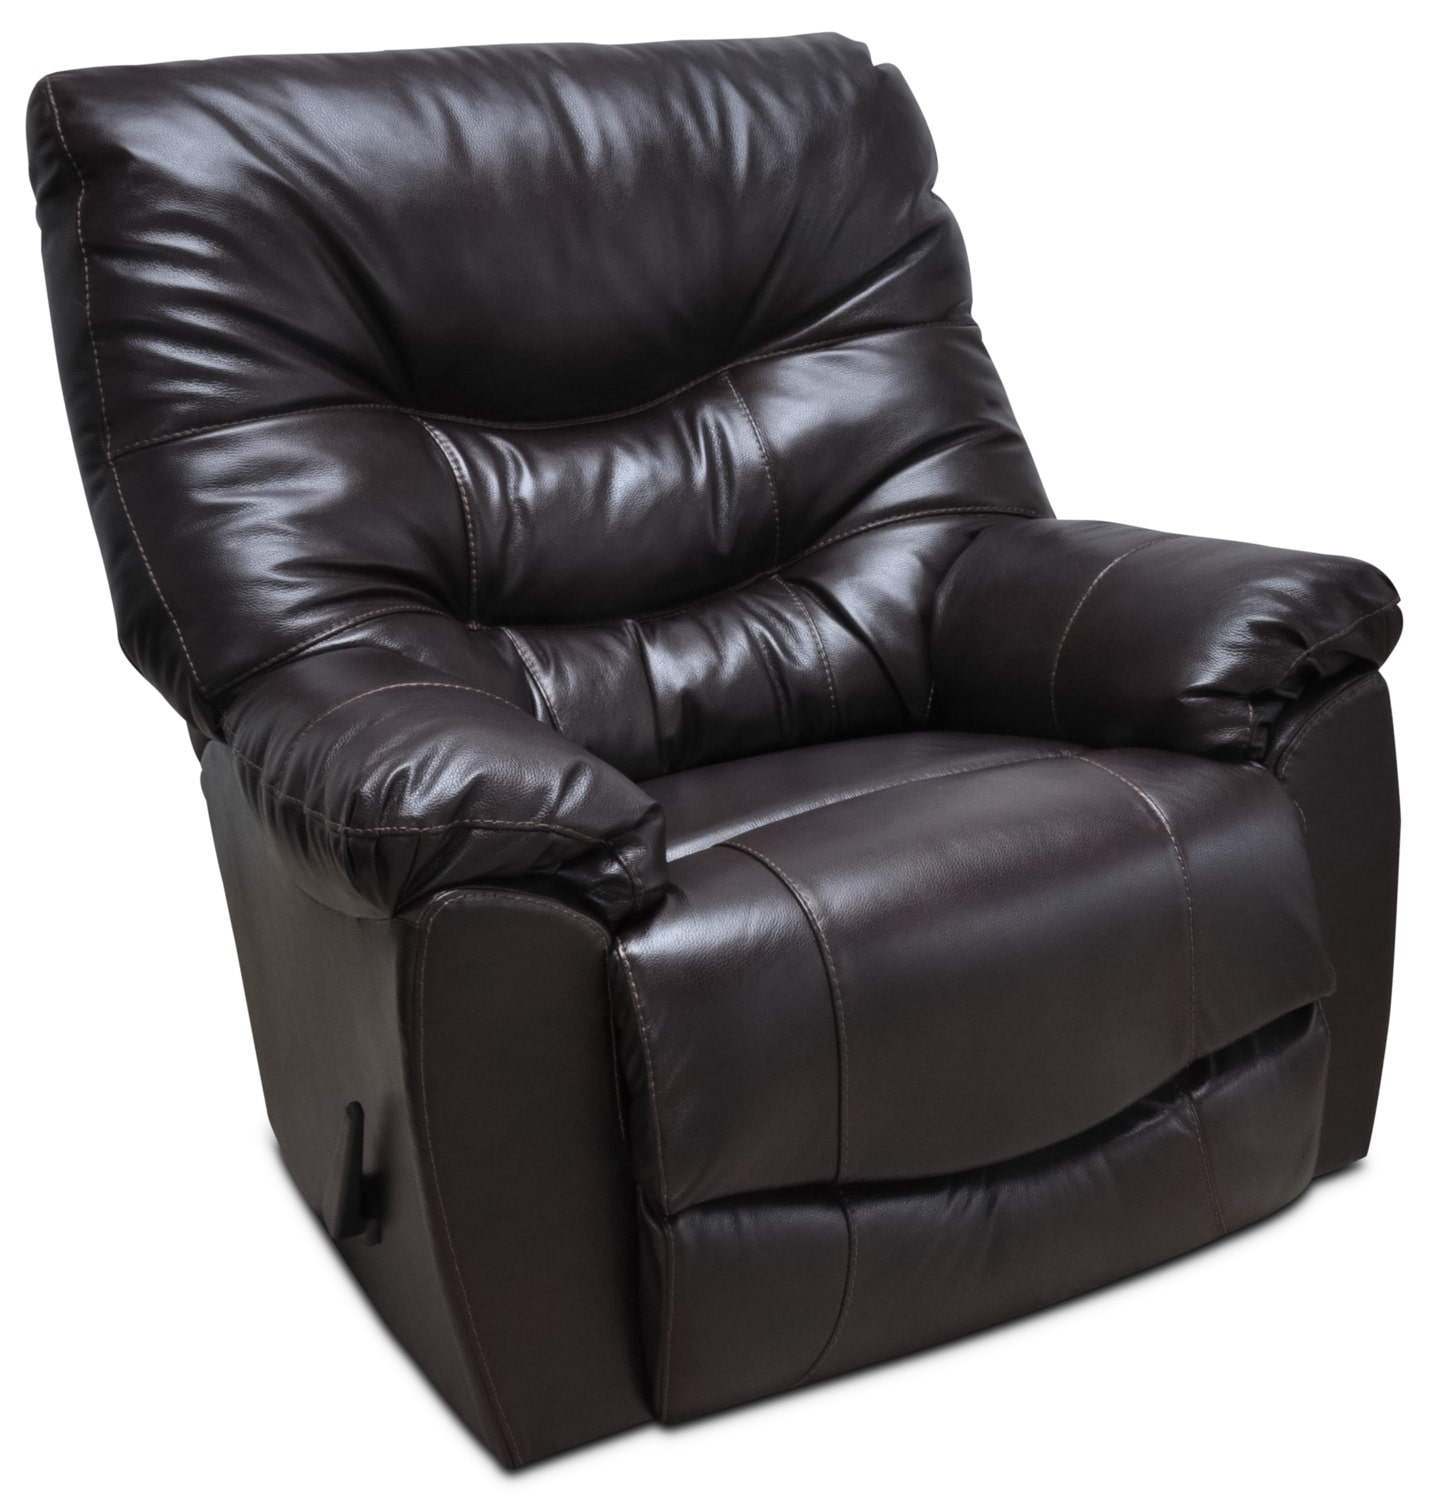 4595 Genuine Leather Rocker Reclining Chair – Espresso